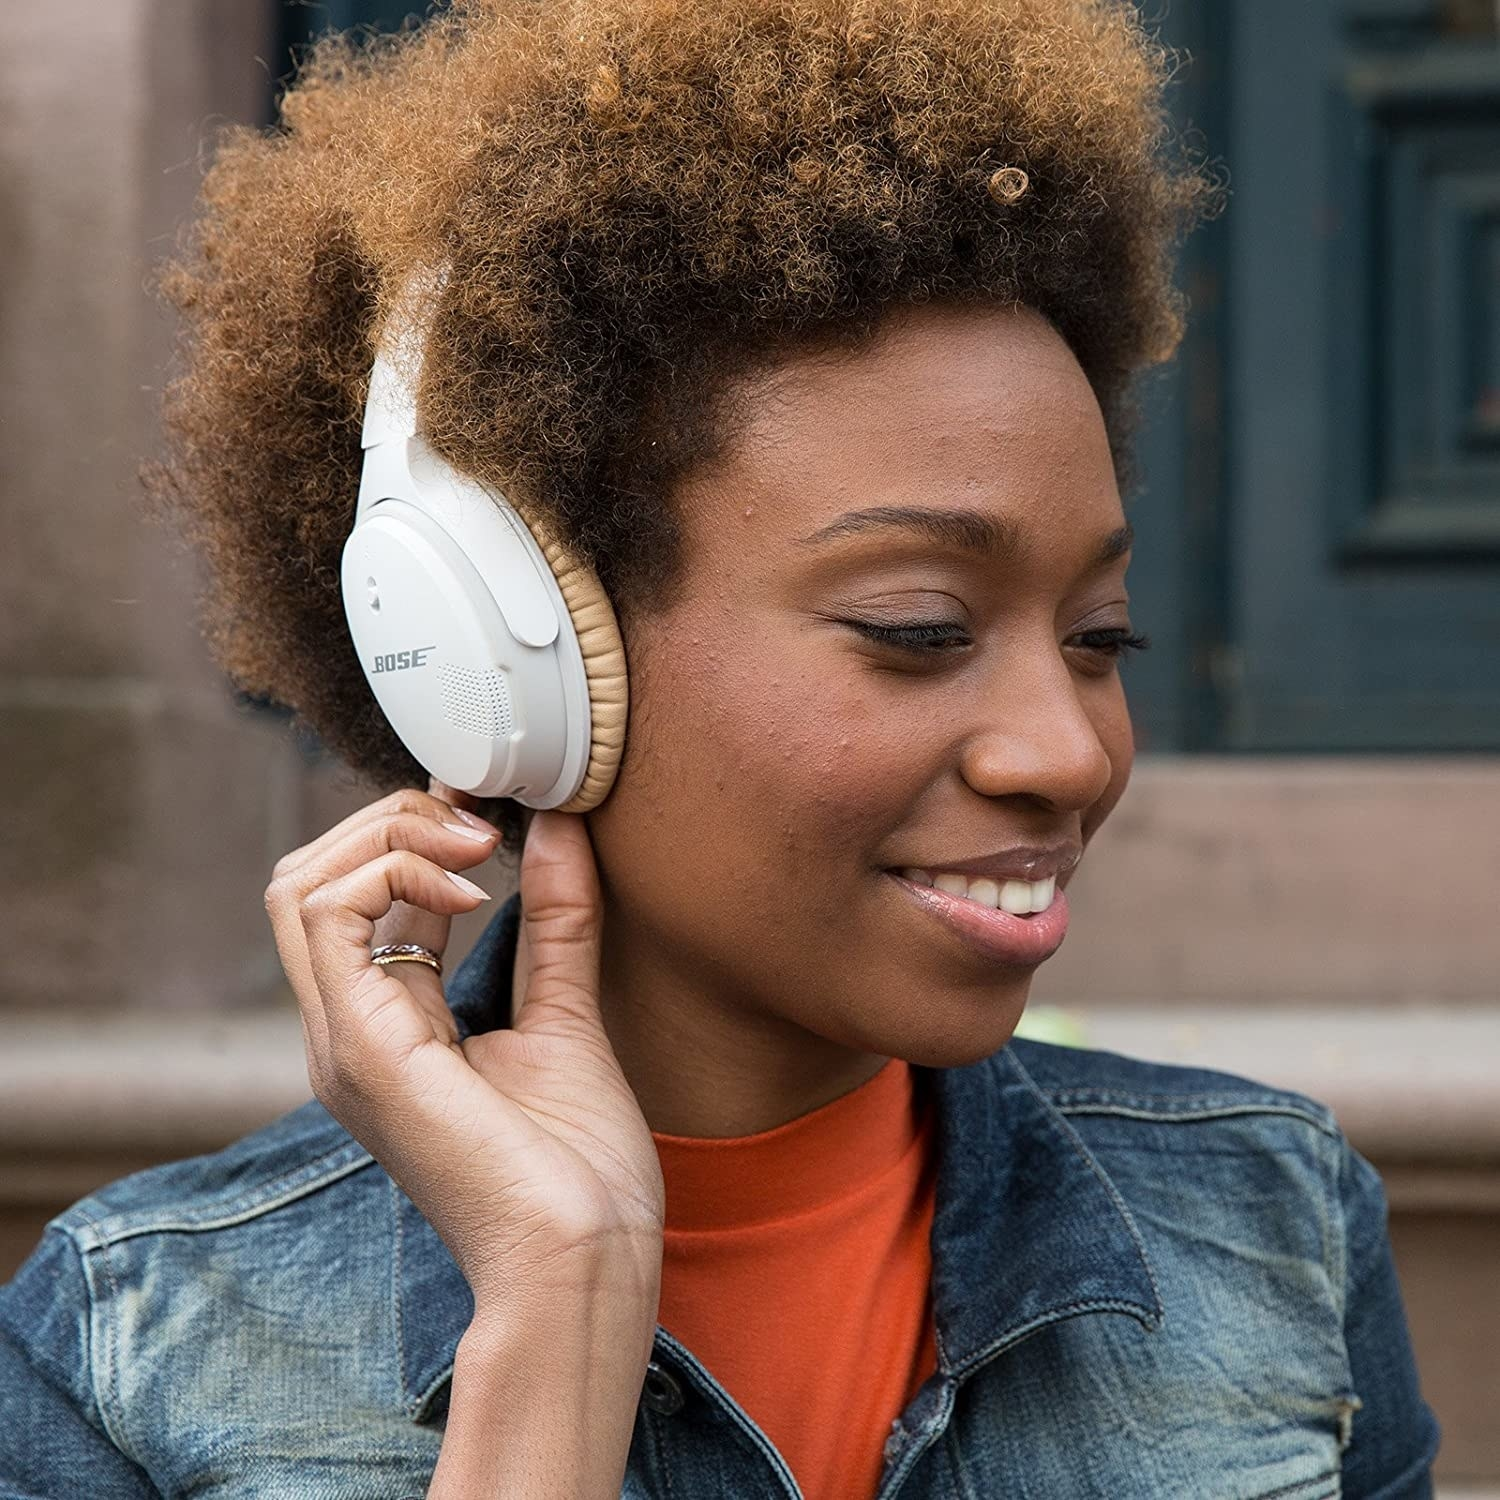 A person adjusting the volume on the Bose Bluetooth headphones